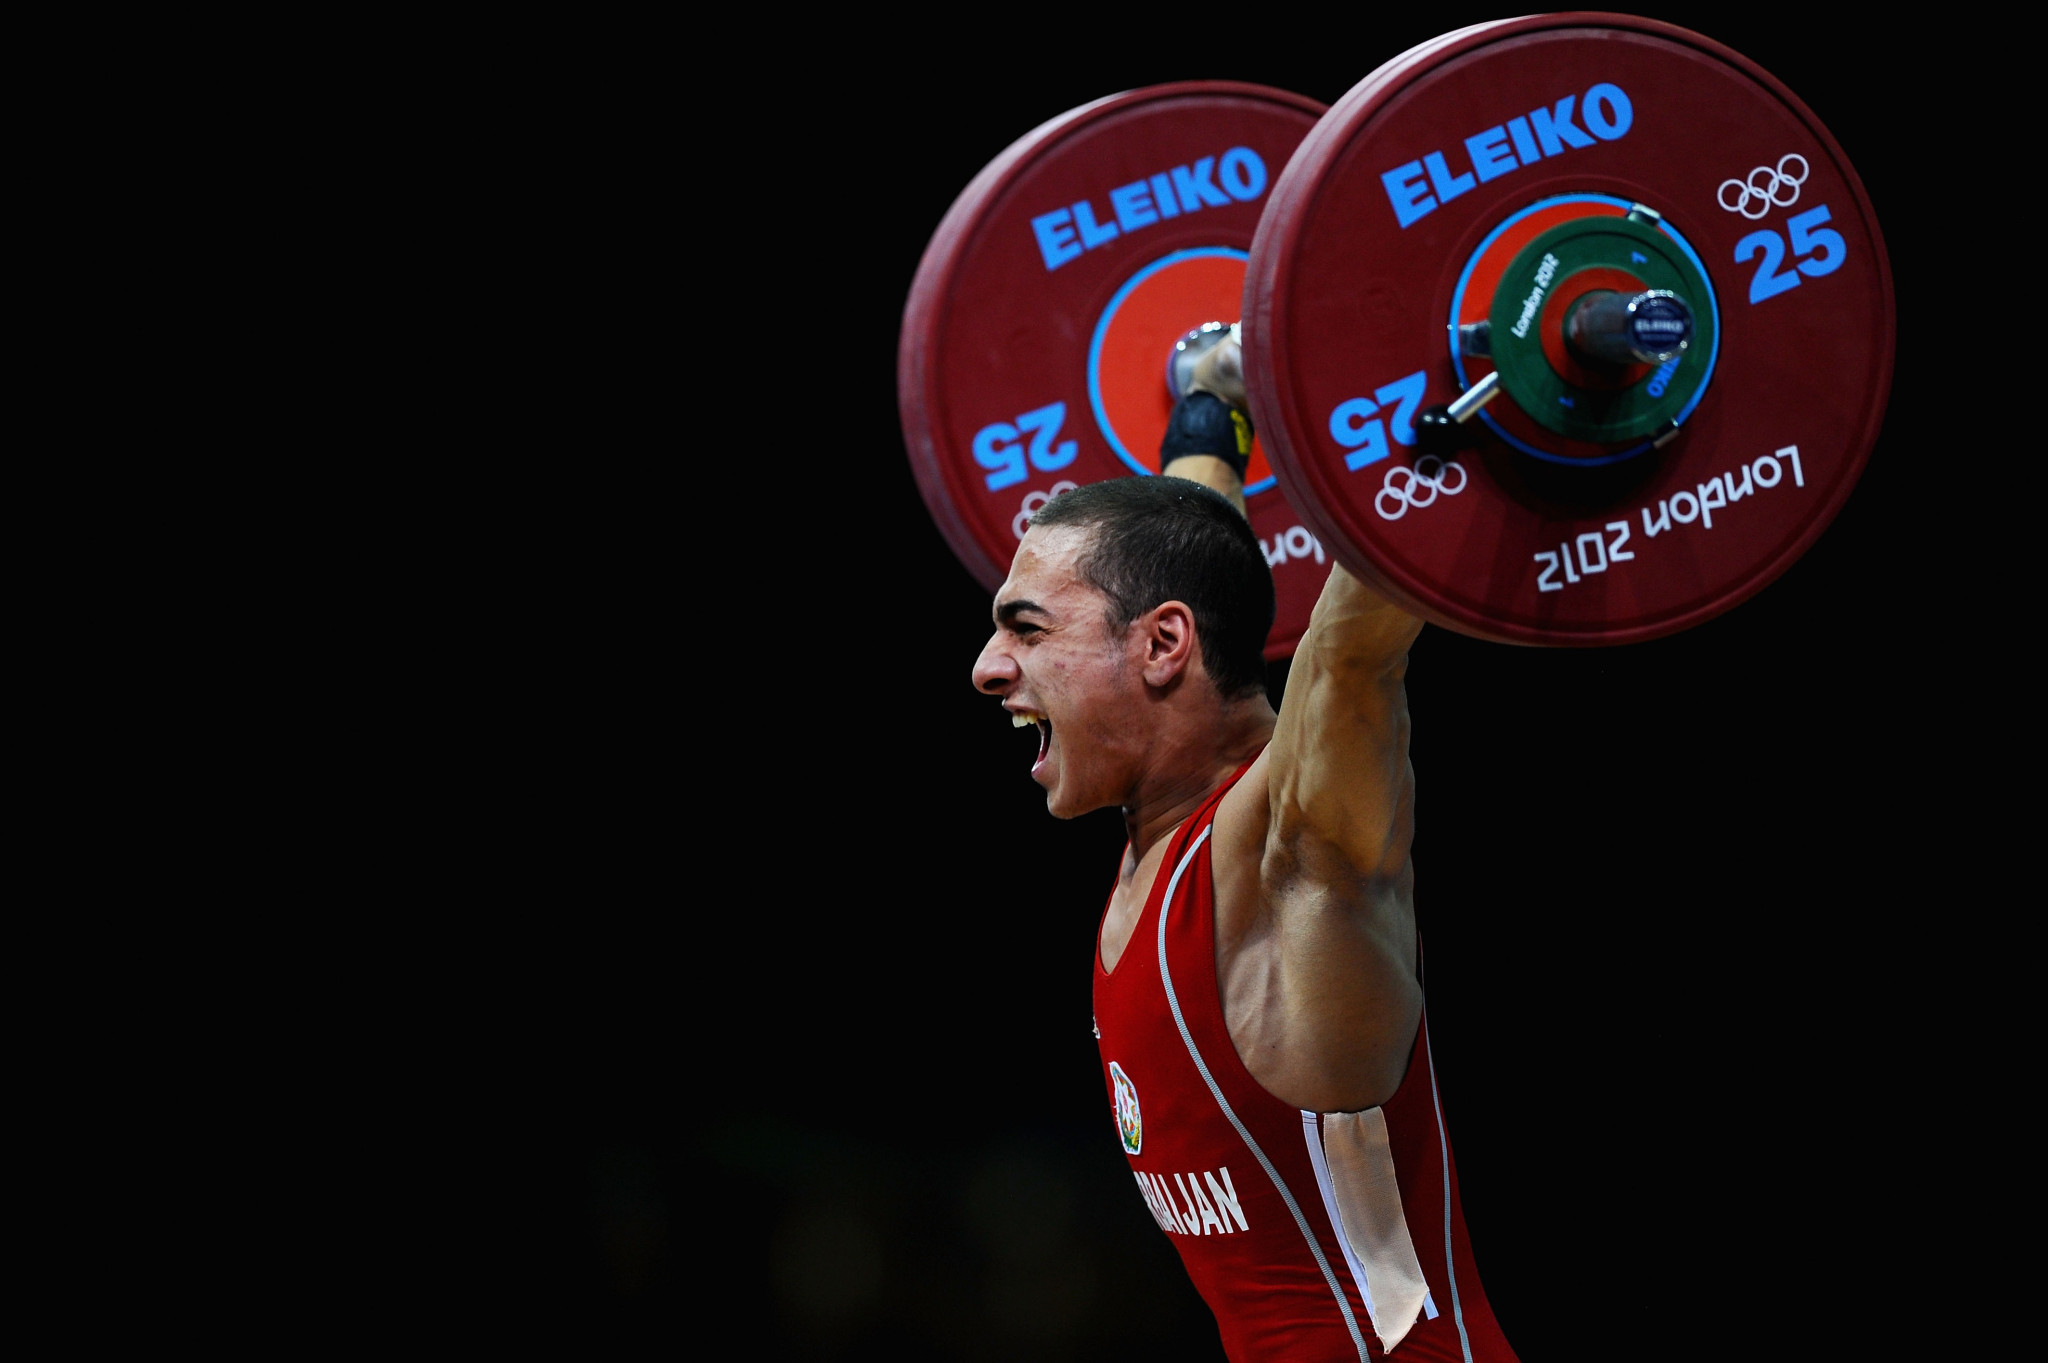 The McLaren Independent Weightlifting Investigation identified Valentin Hristov as one athlete representing Azerbaijan who was shown favour by the Aján regime, including being allowed to continue to compete despite testing positive twice in quick succession in April and June 2013 ©Getty Images